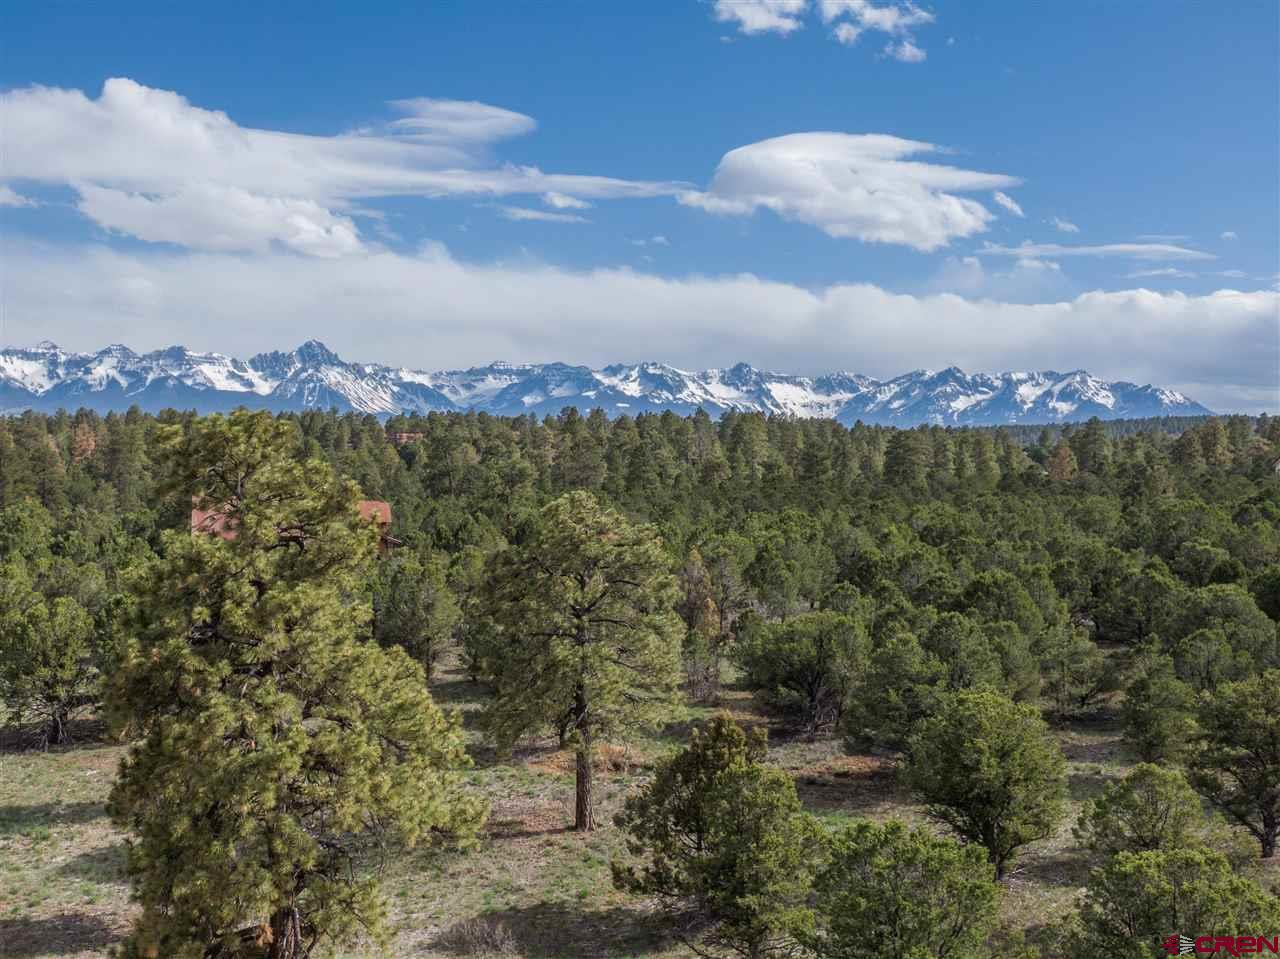 Beautiful 4 acre perimeter homesite in Fisher Canyon South subdivision on Loghill Mesa. Easy 15 minute drive to downtown Ridgway, 35 minutes to Montrose. Exclusive and quiet neighborhood with just 36 homesites that have been thoughtfully designed for privacy. Ponderosa Pines provide ambiance while the second story offers panoramic views of both the Sneffels and Cimarron mountains. Level terrain facilitates easy access and construction. Utilities to the the lot line. Tap fee is paid for Dallas Creek domestic water. Idyllic western lifestyle awaits!